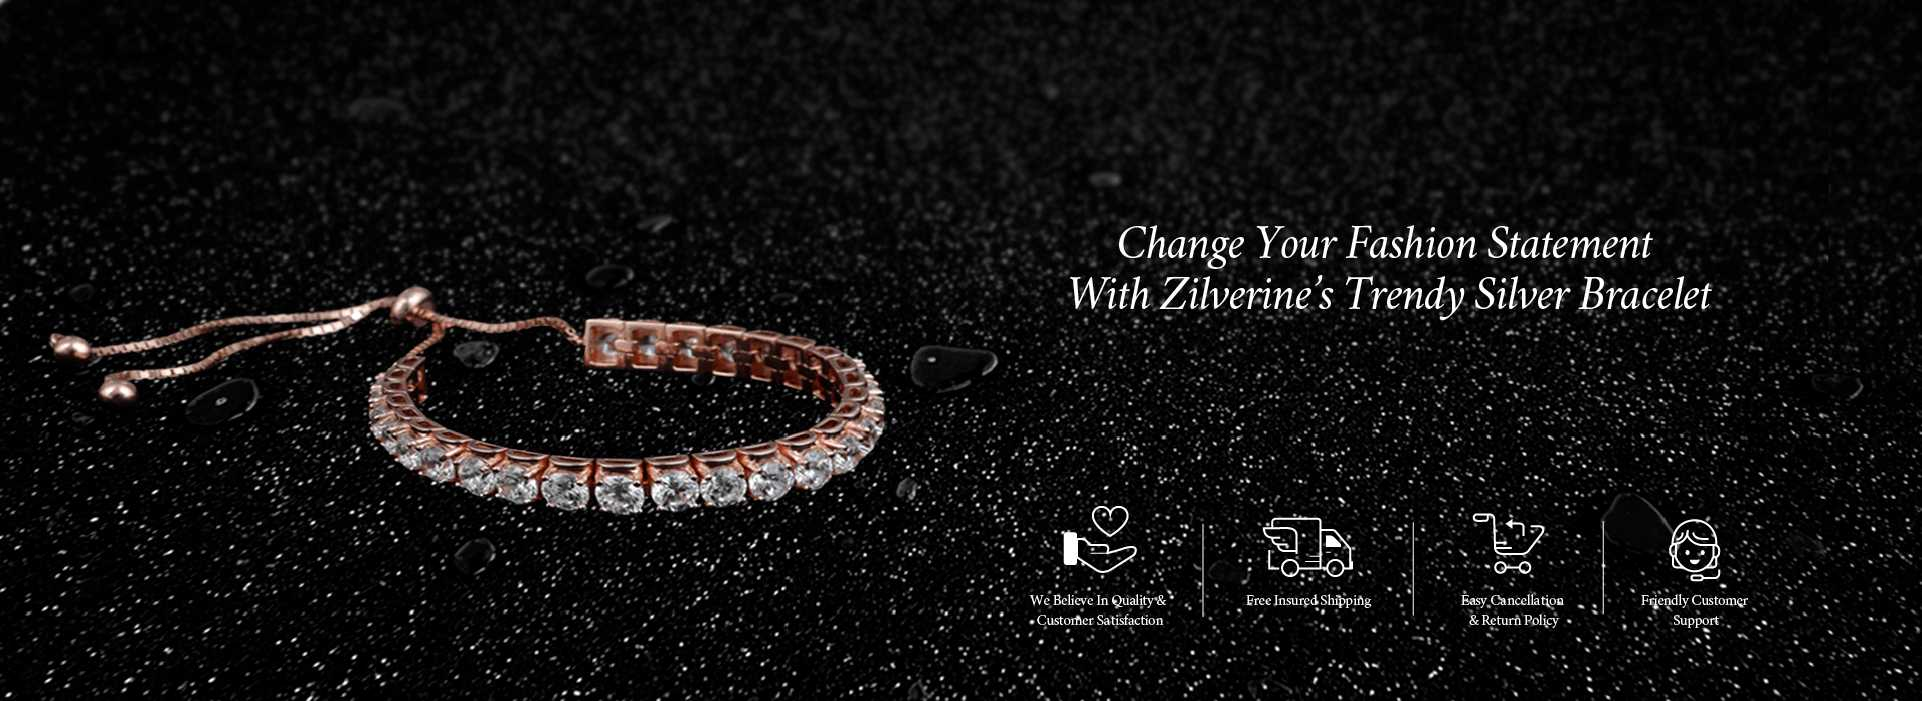 Change Your Fashion Statement with Zilverine's Trendy Silver Bracelet